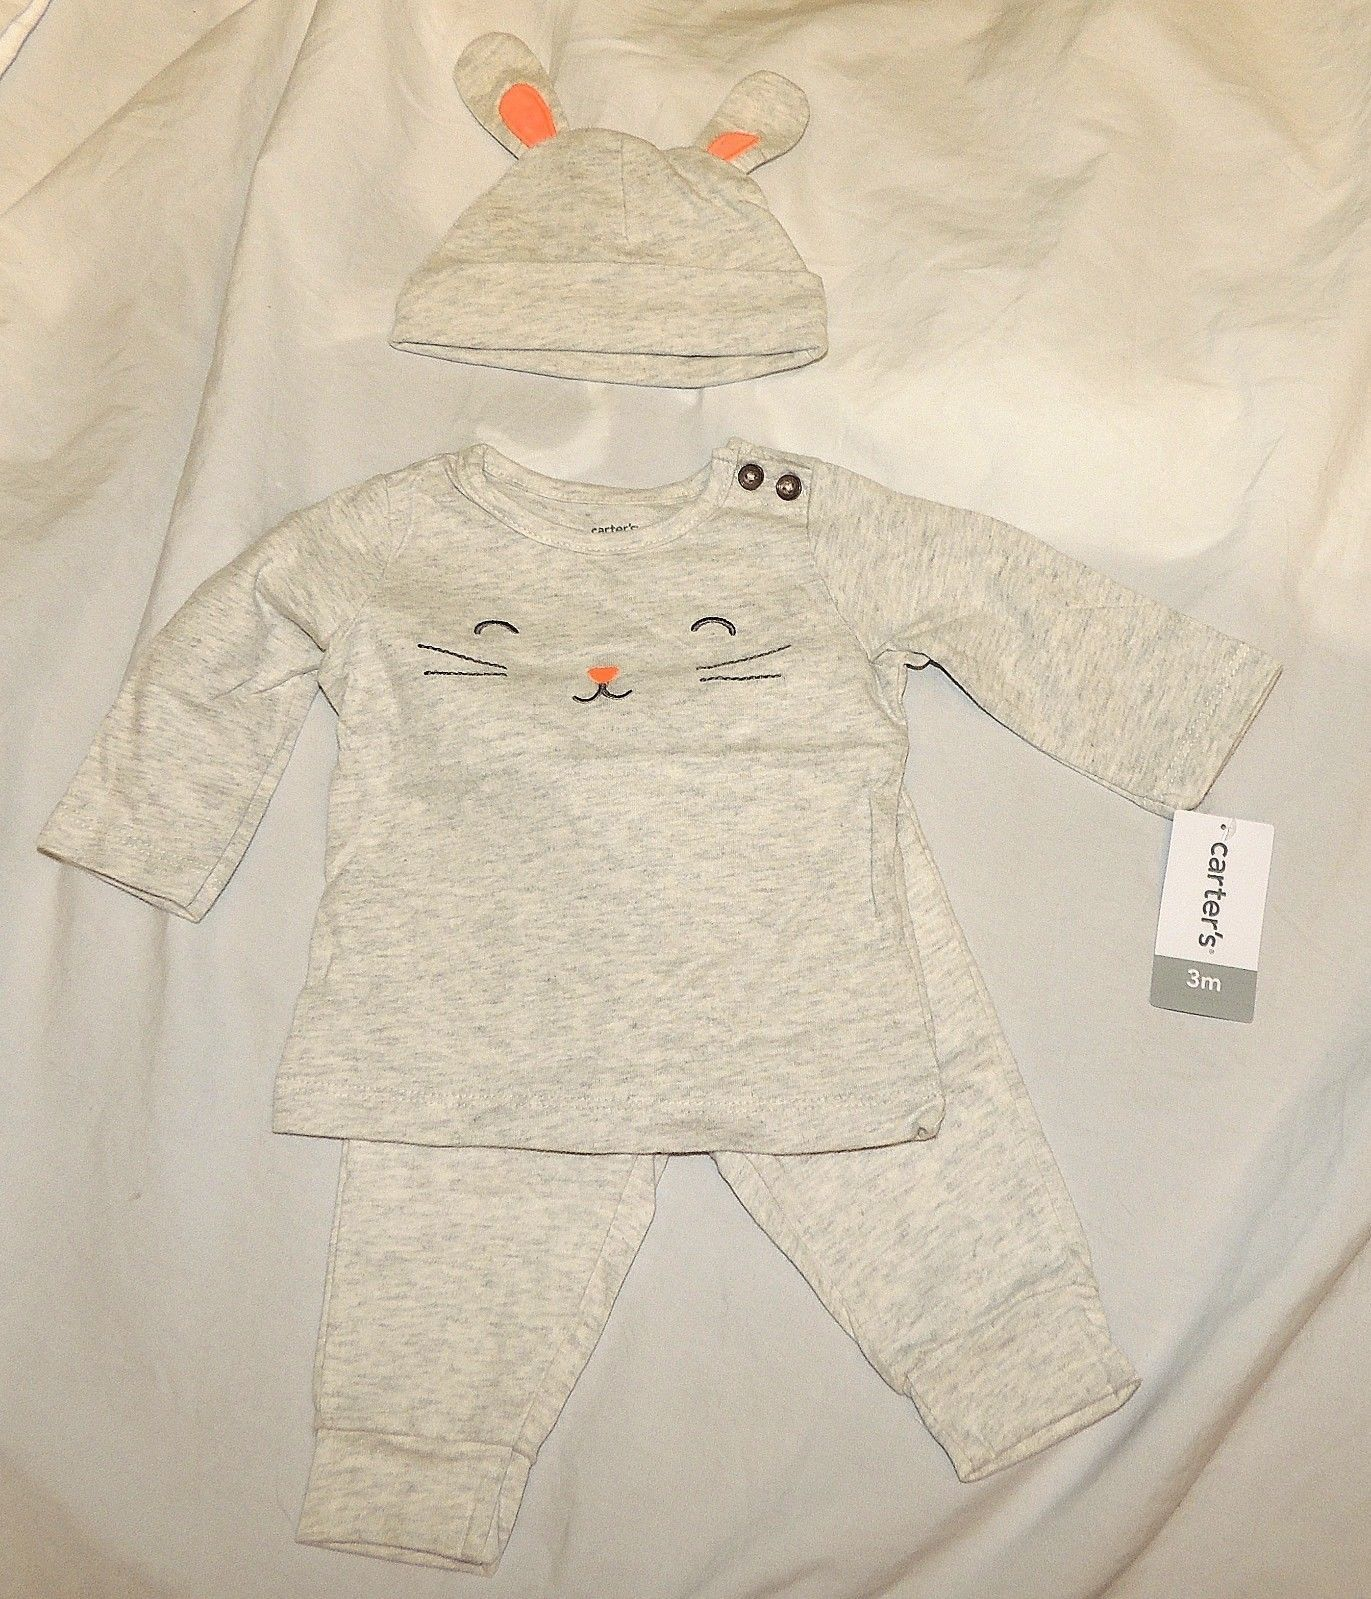 57b1a517b598 ... New Carters Baby Bunny Outfit Costume Unisex Sizes 3 6 9 M Easter  Halloween ...